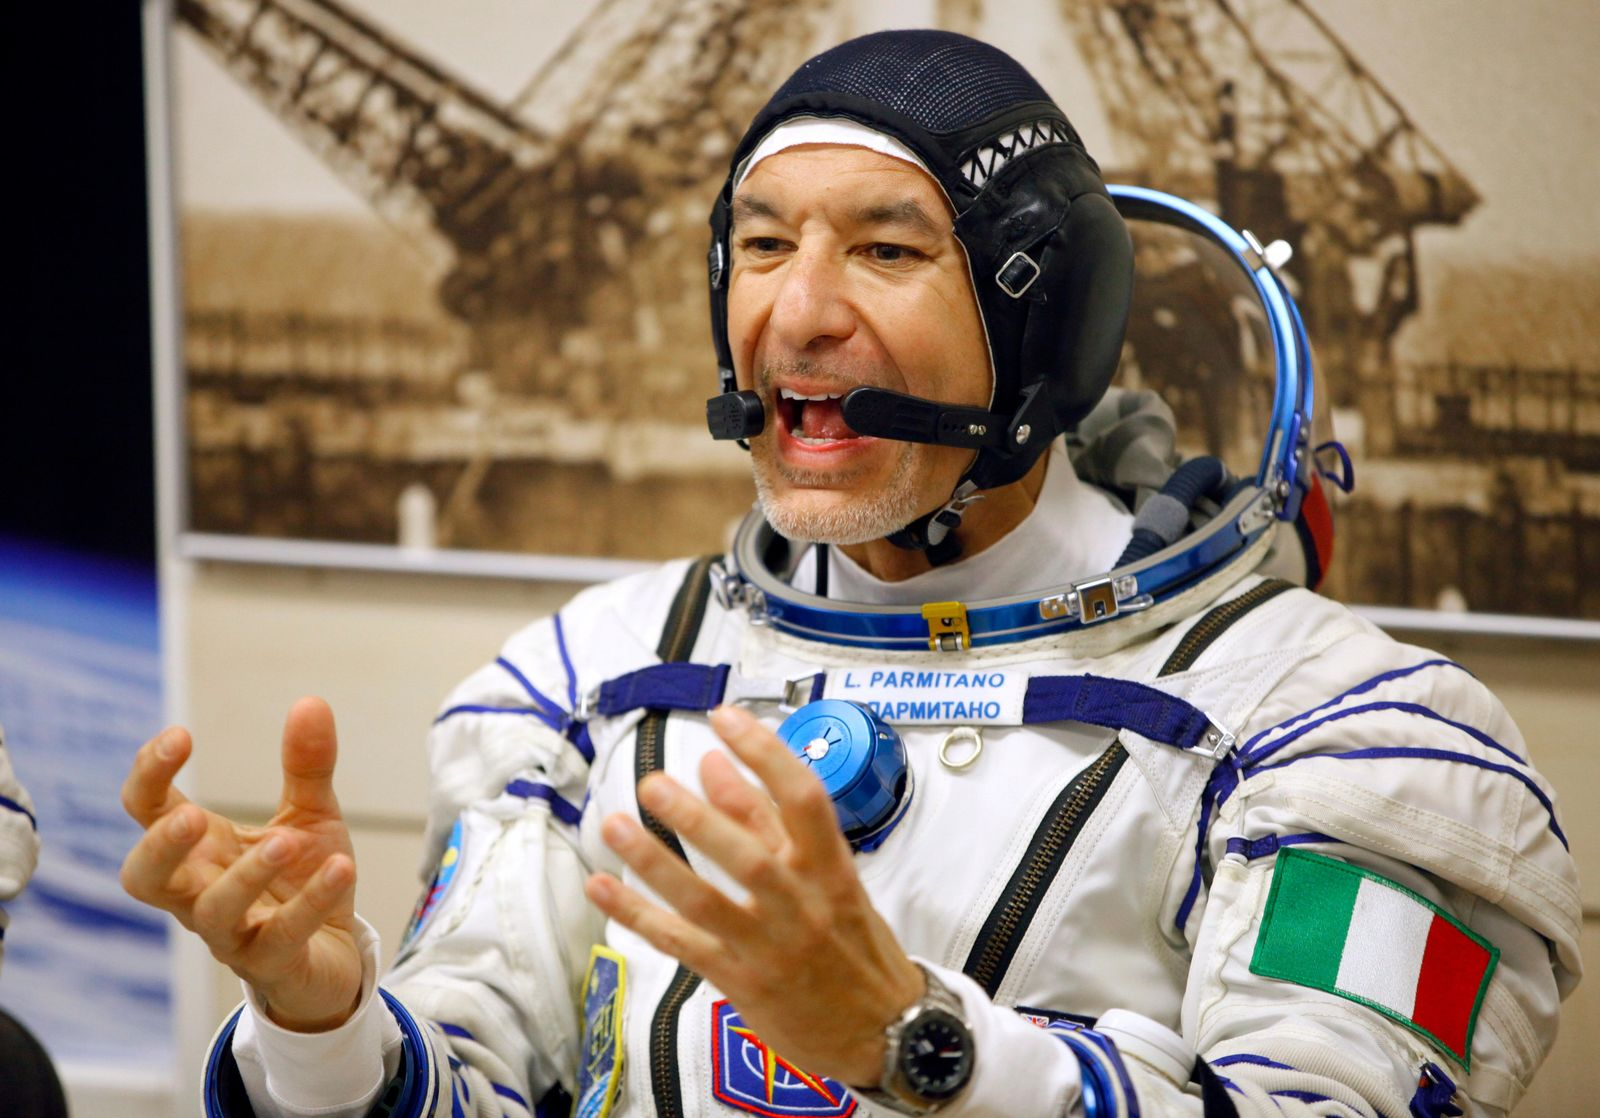 Italian astronaut Luca Parmitano, member of the main crew of the expedition to the International Space Station (ISS), gestures prior to the launch of Soyuz MS-13 space ship at the Russian leased Baikonur cosmodrome, Kazakhstan, Saturday, July 20, 2019. (AP Photo/Dmitri Lovetsky)